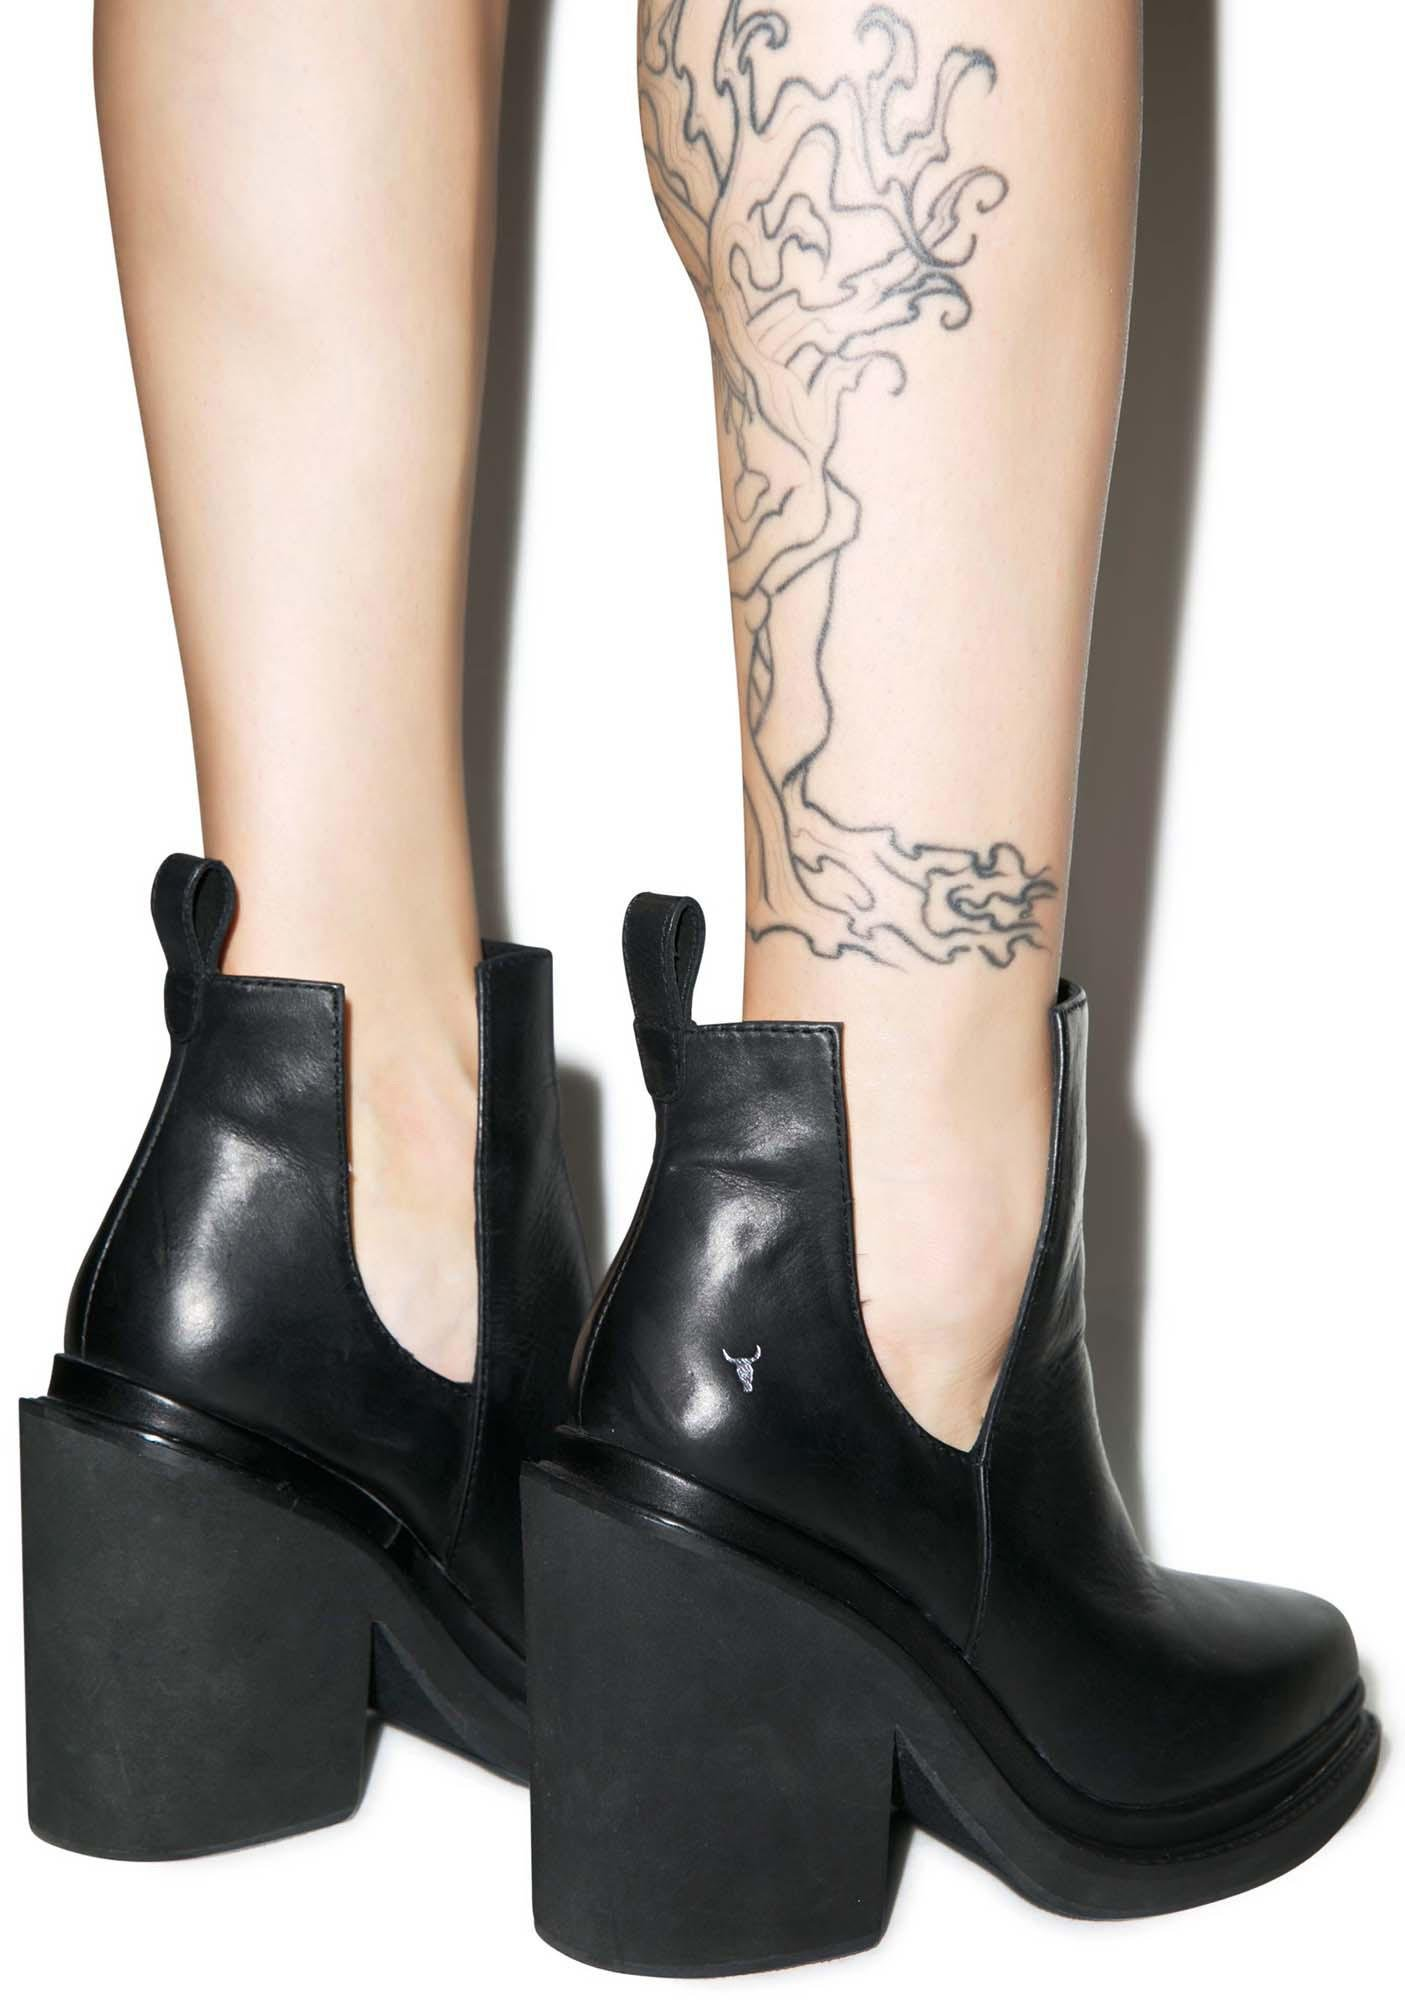 Windsor Smith Sharni Cut-Out Ankle Boots